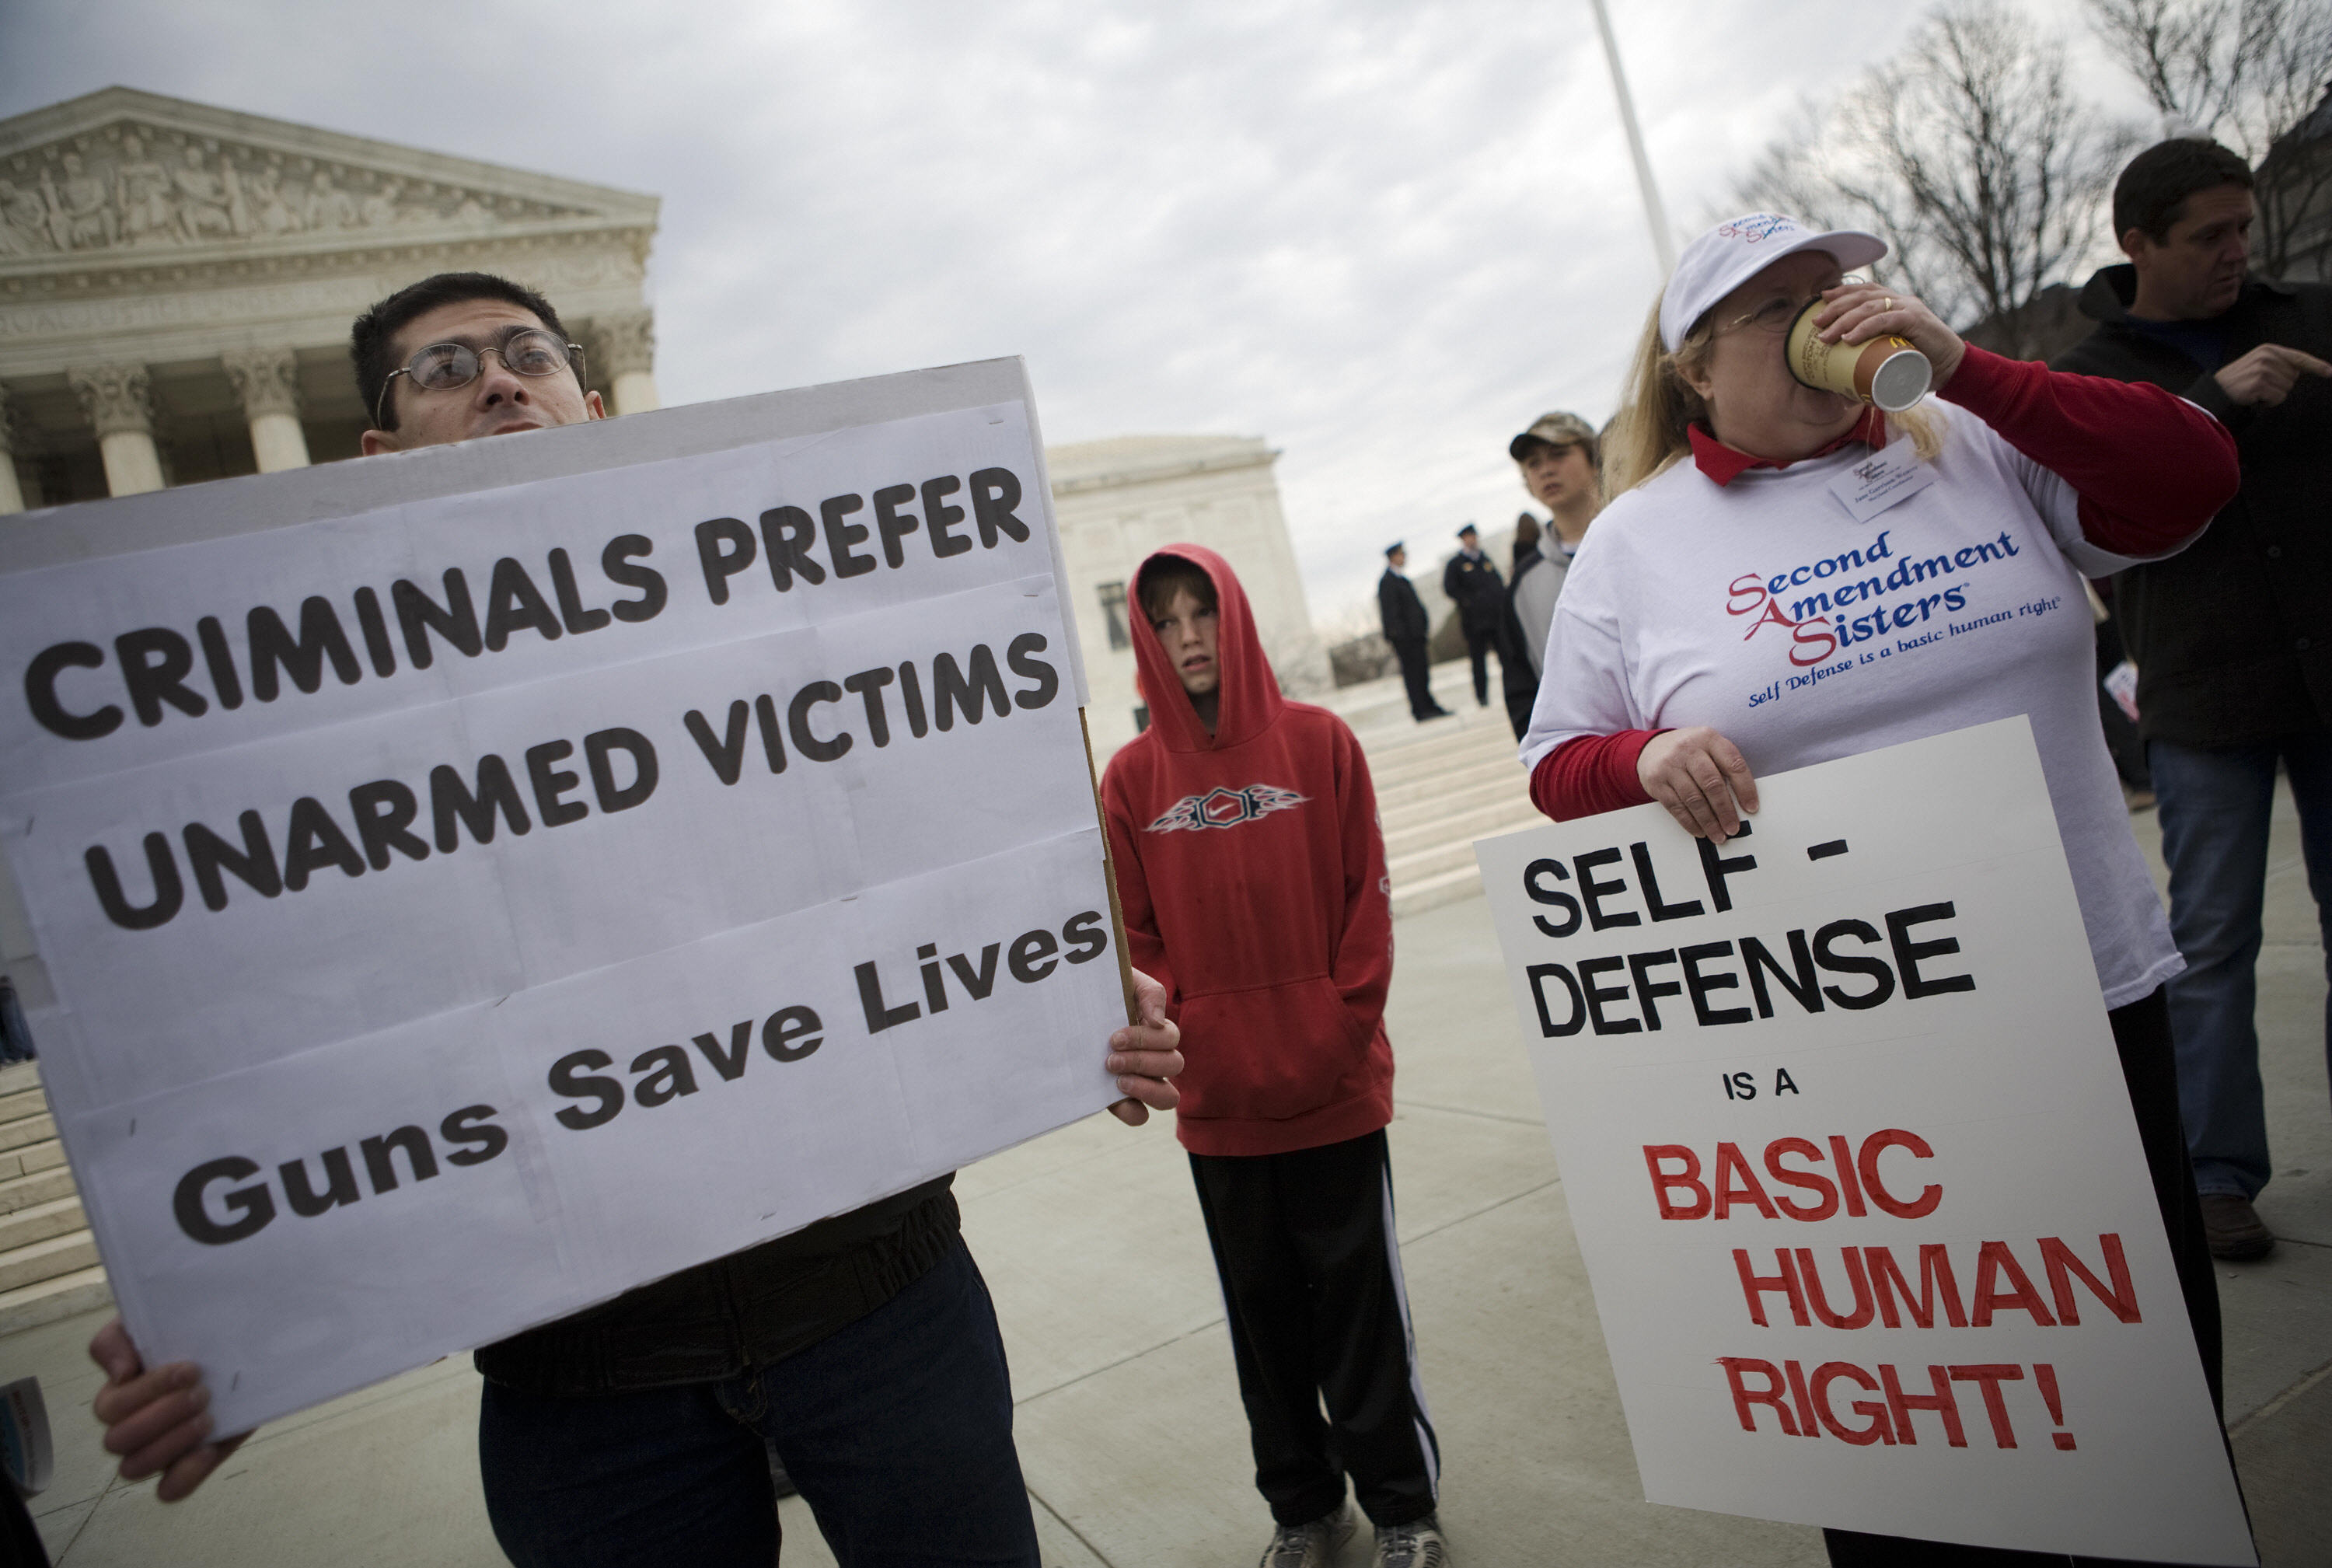 Gun rights supporters hold placards outside of the Supreme Court on March 18, 2008. (Mandel Ngan/AFP/Getty Images)